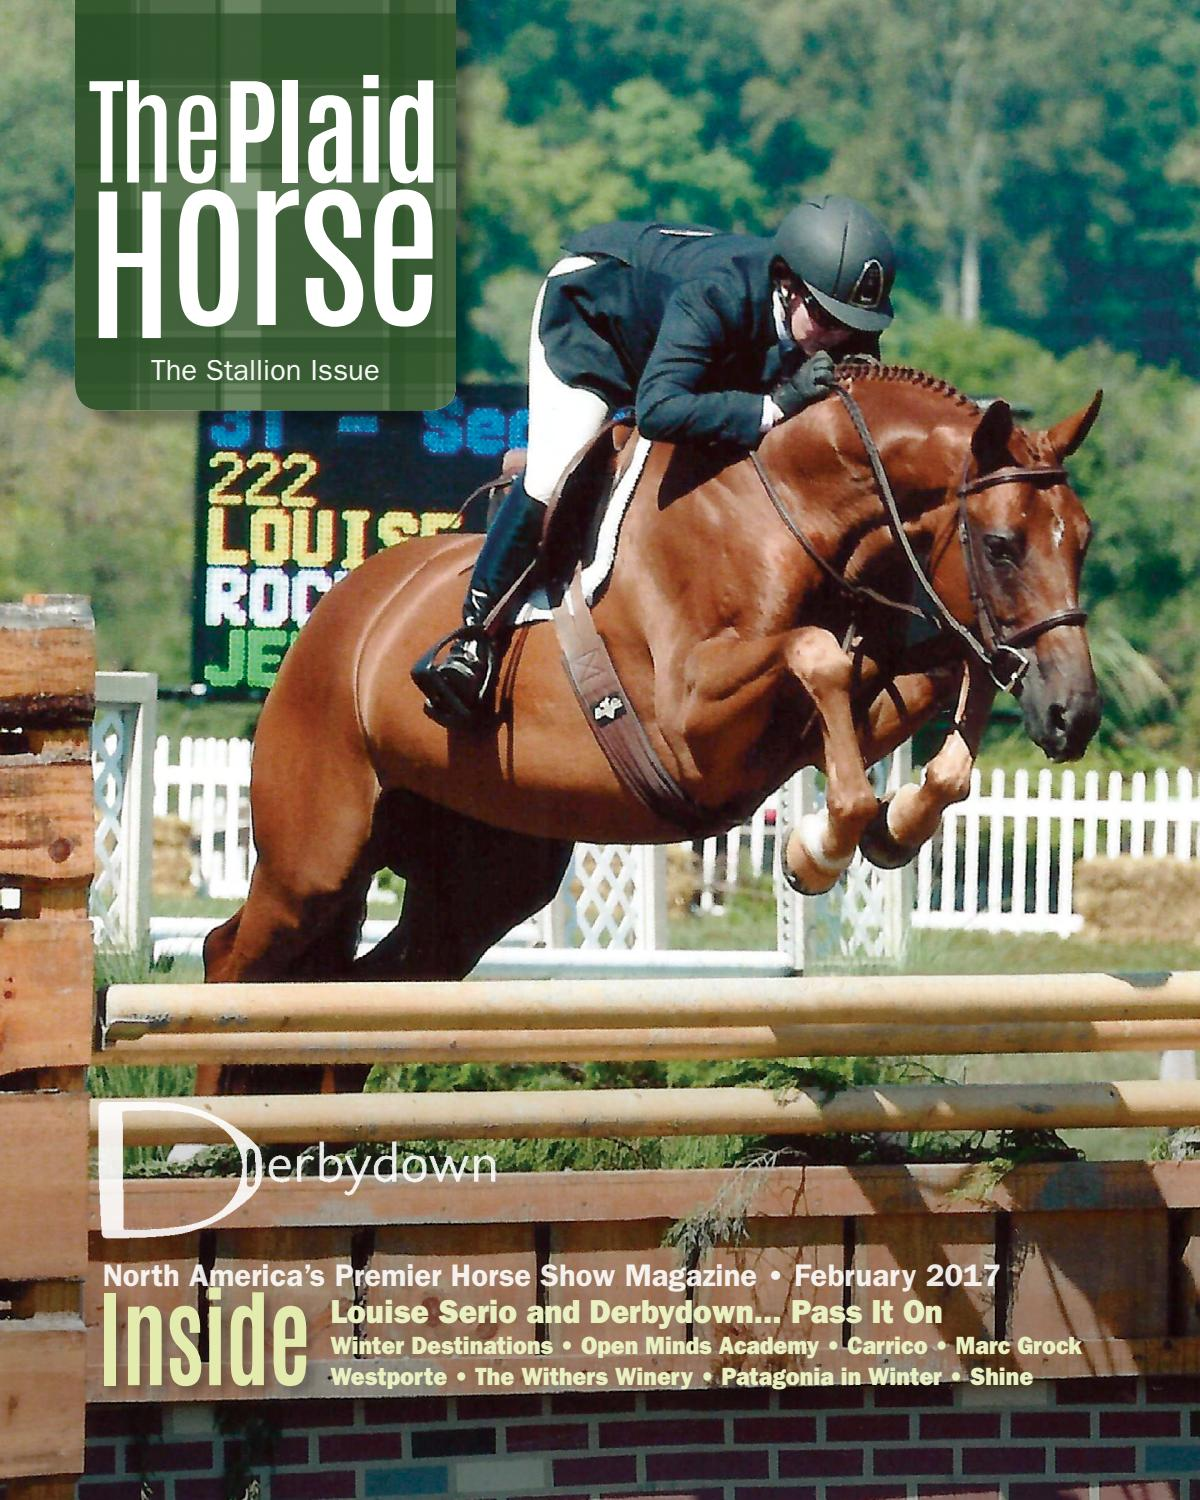 The Stallion Issue February 2017 The Plaid Horse By The Plaid Horse Issuu